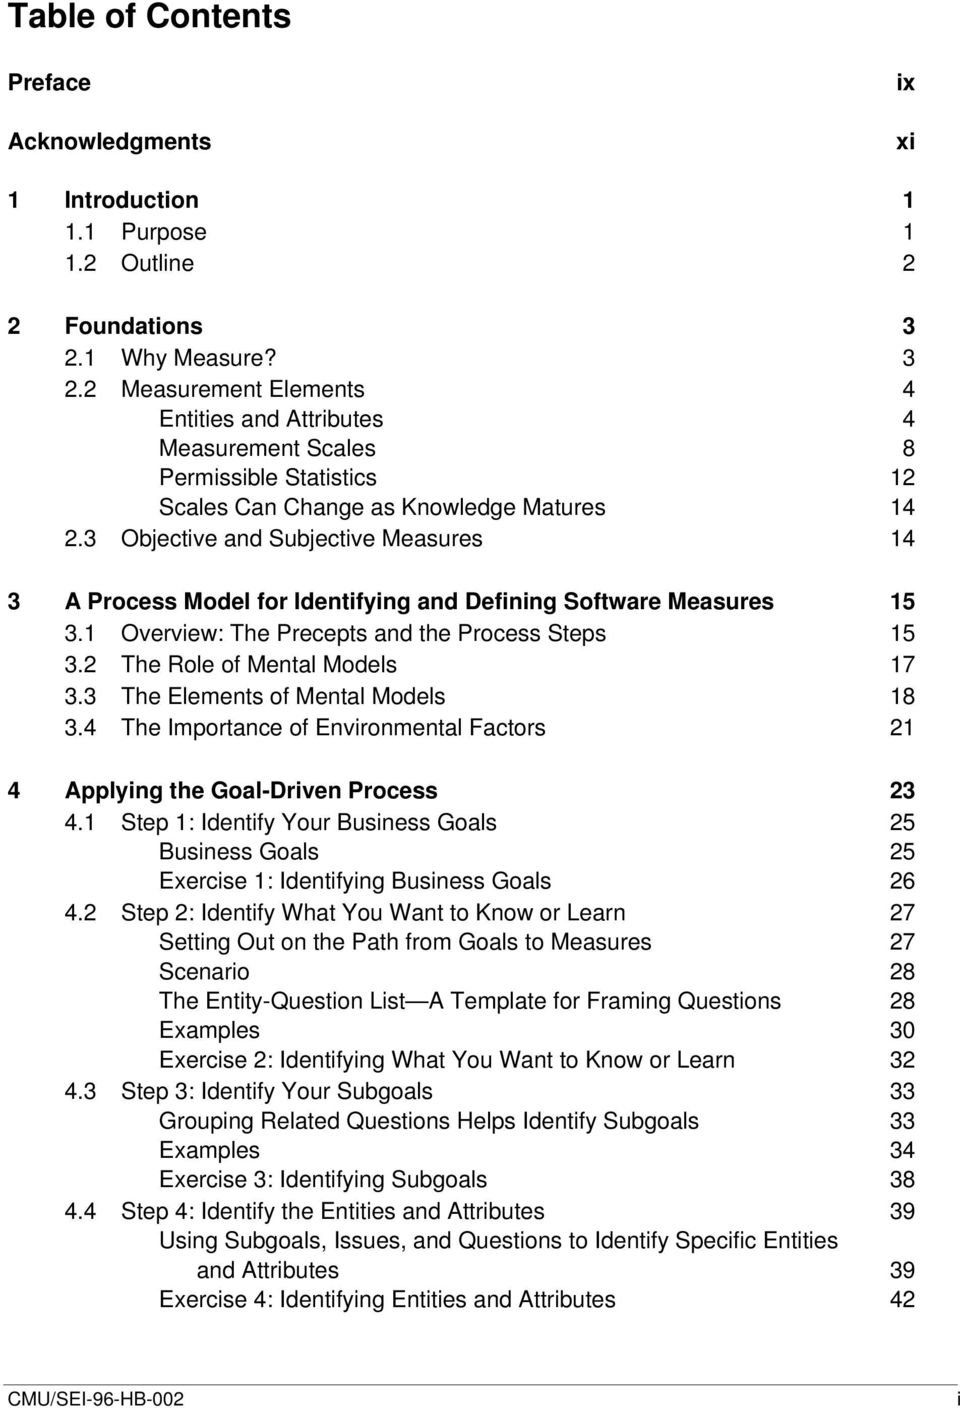 3 Objective and Subjective Measures 14 3 A Process Model for Identifying and Defining Software Measures 15 3.1 Overview: The Precepts and the Process Steps 15 3.2 The Role of Mental Models 17 3.